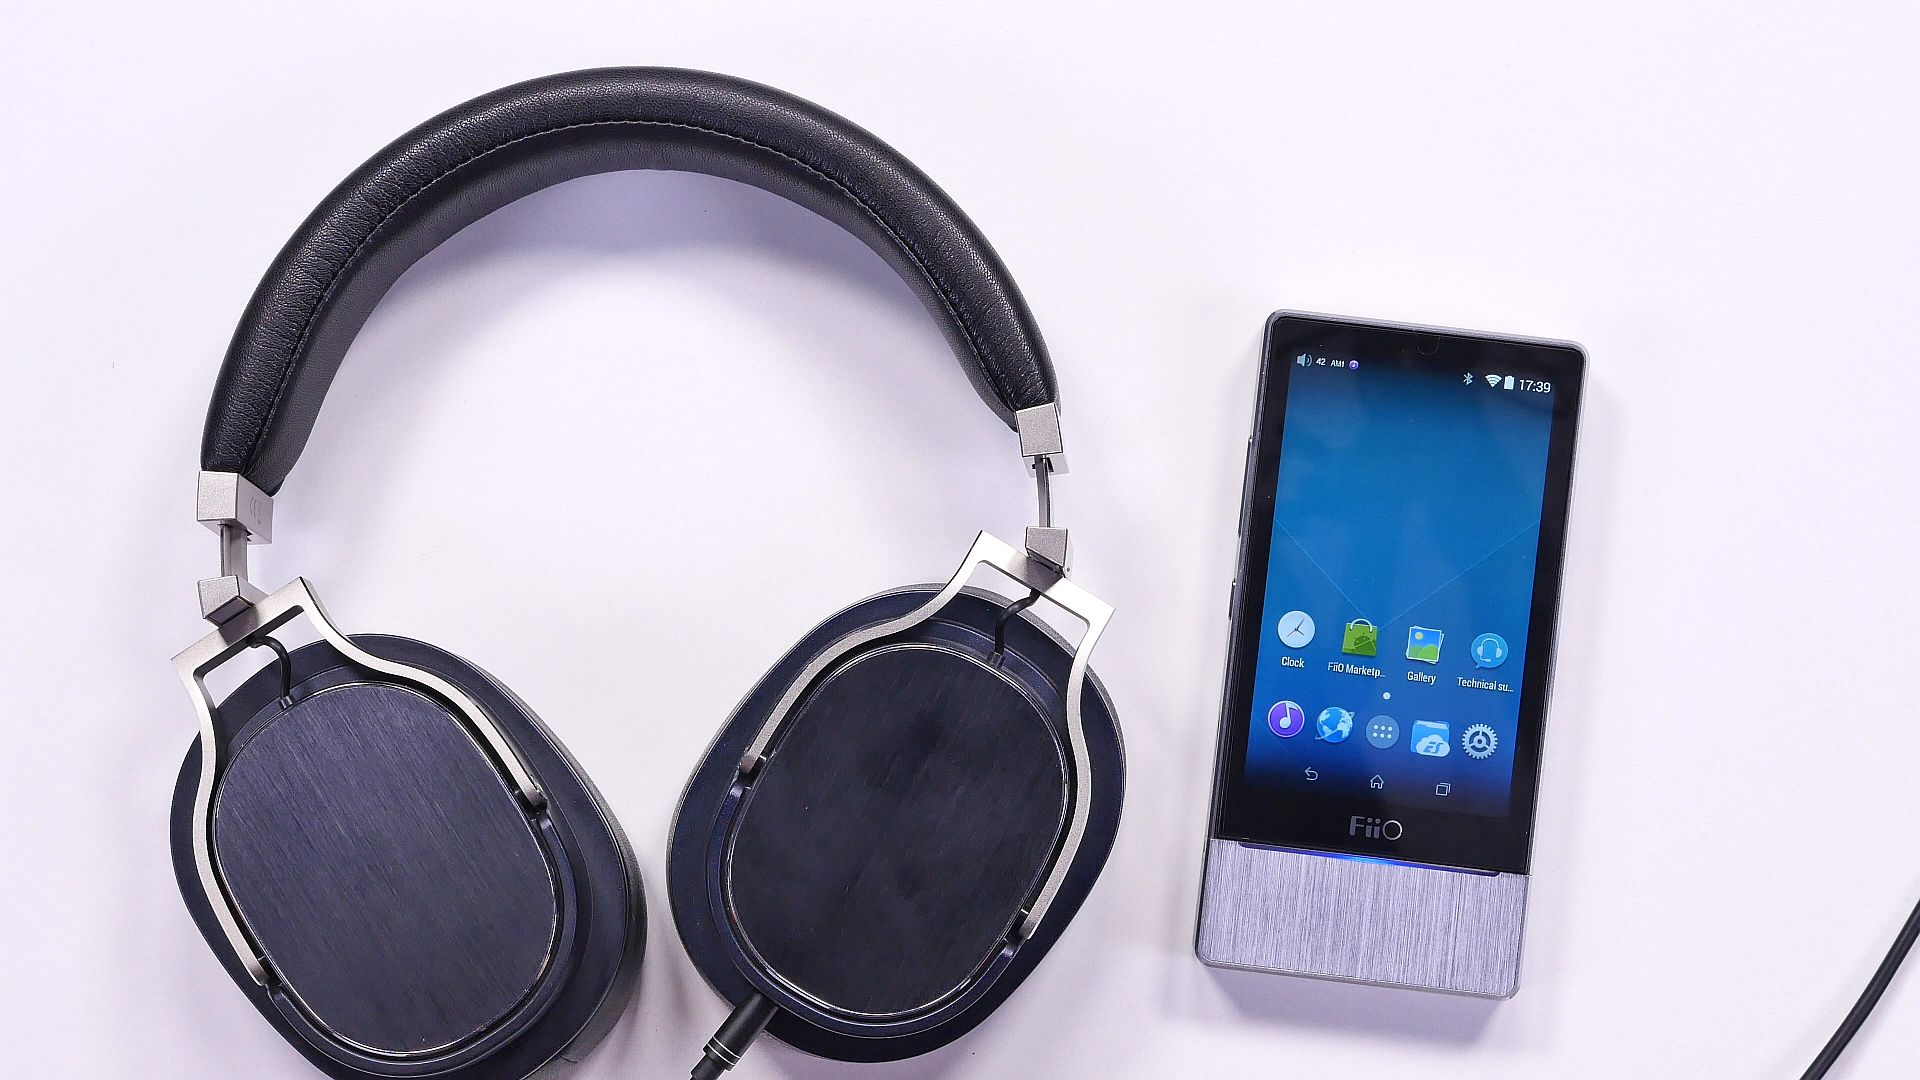 oppo_pm-3_fiio_x7_unboxing_review_buhnici